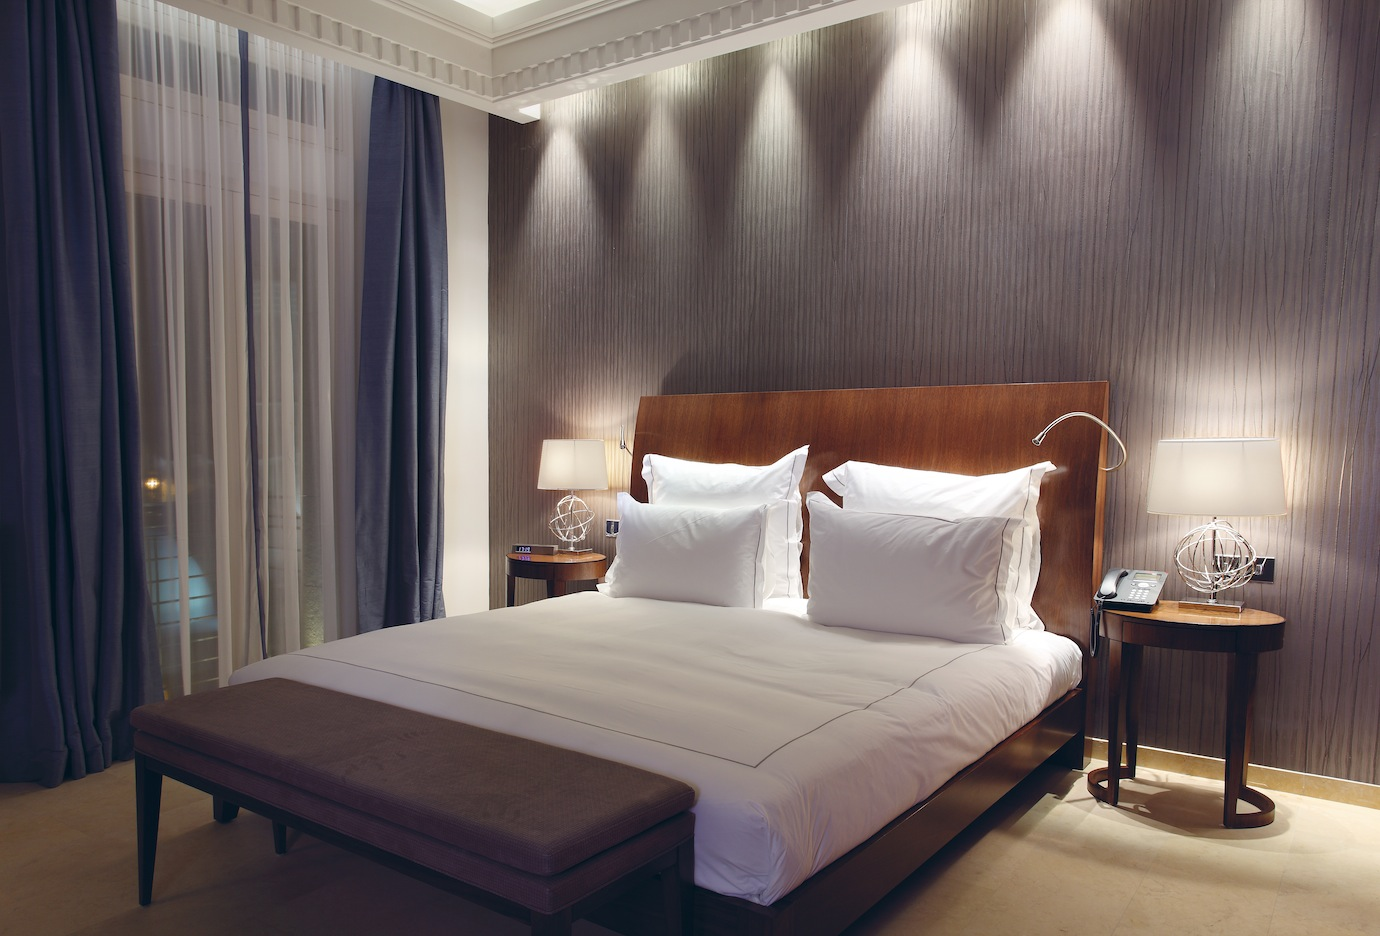 le gray hotel beirut: sophistication and style combined | blog